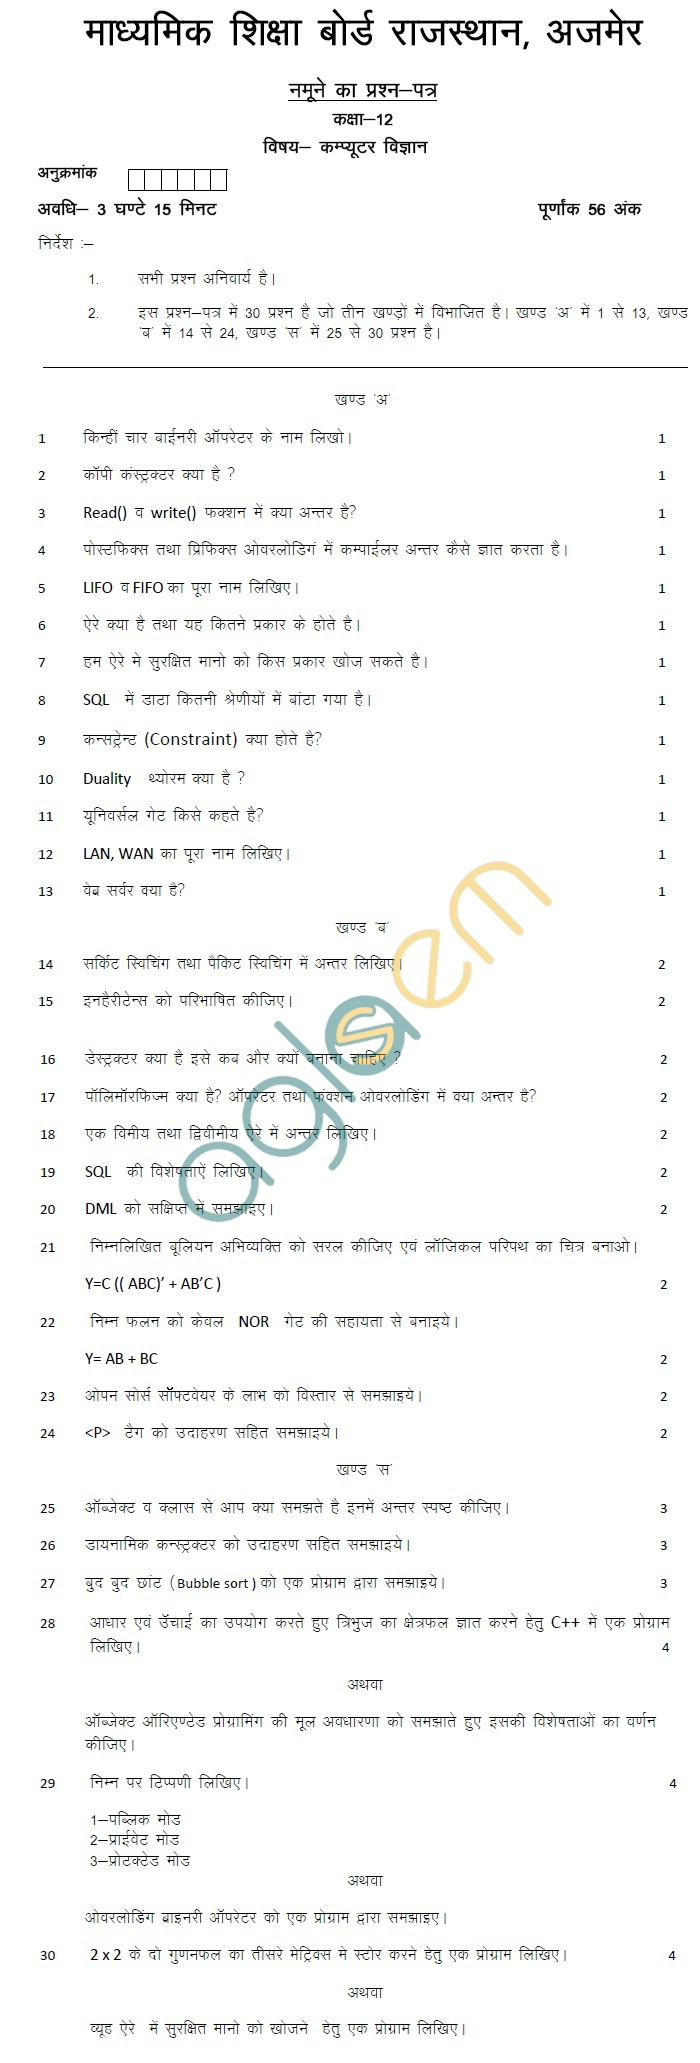 Rajasthan Board Class 12 Computer Science Model Question Paper